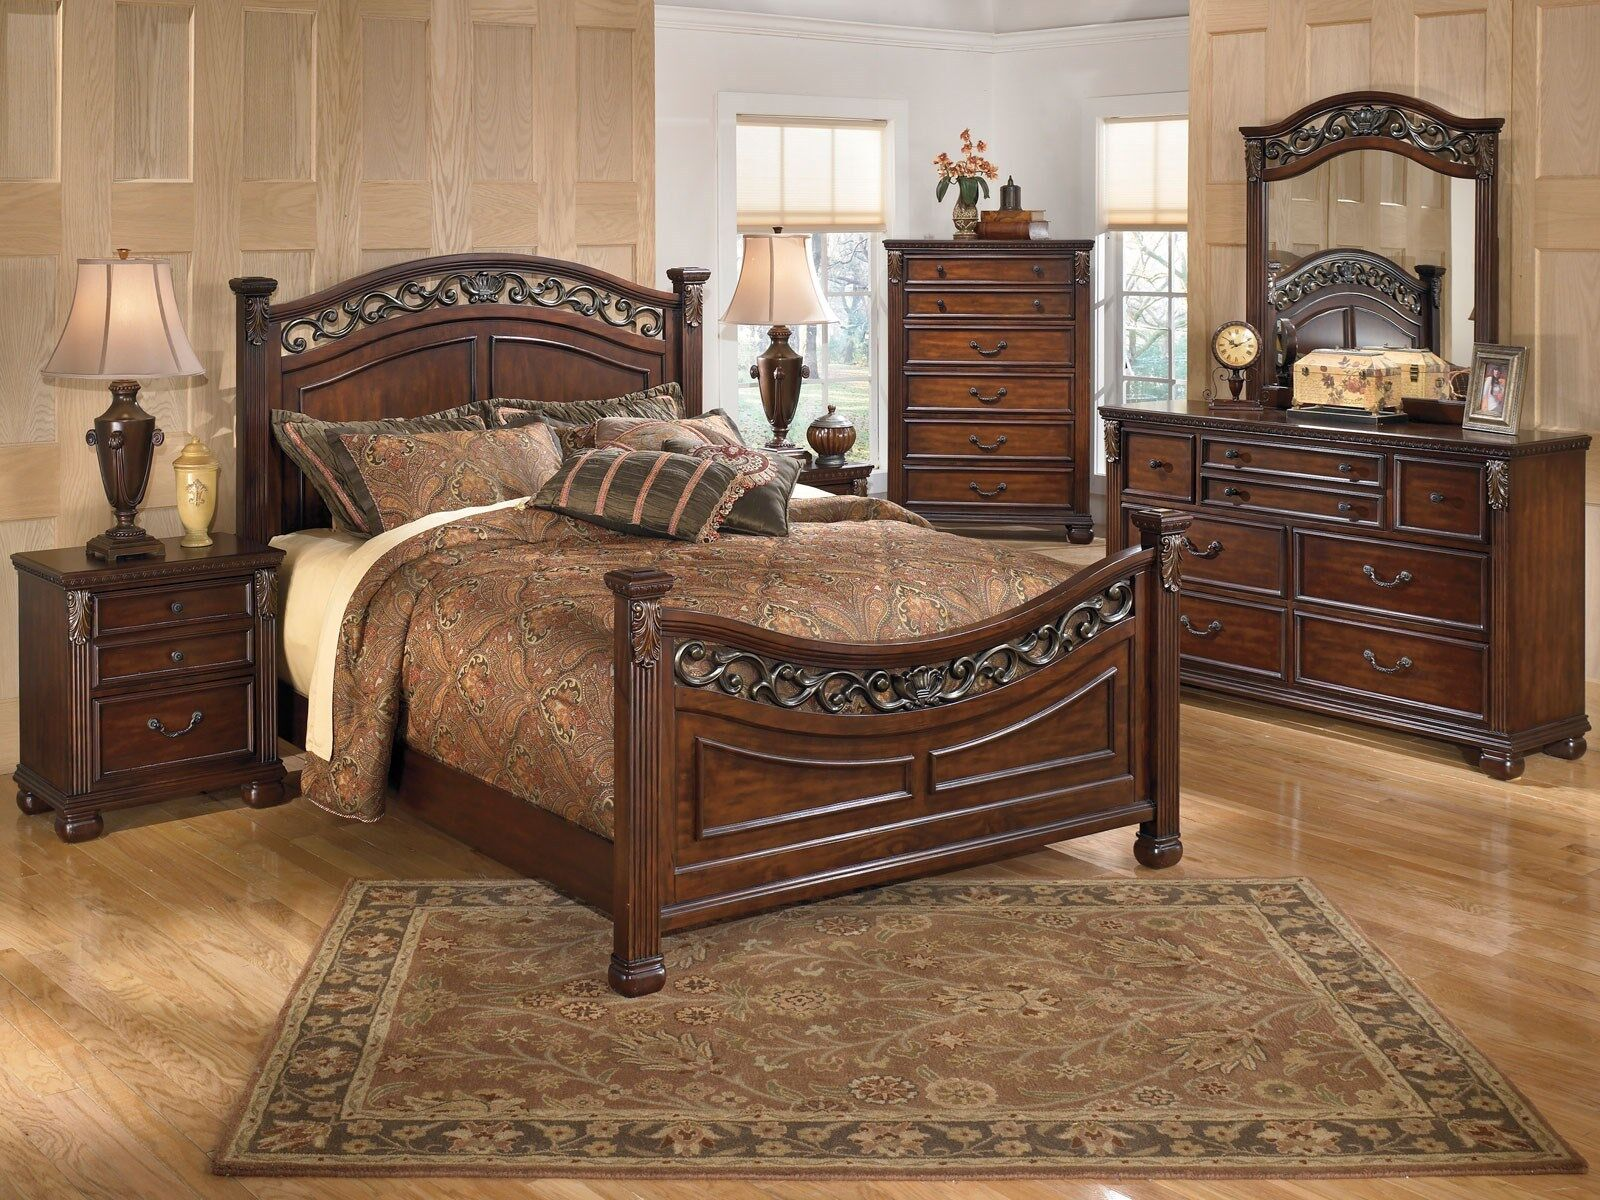 King Bedroom Furniture Sets further Solid Wood Bedroom Furniture Sets ...